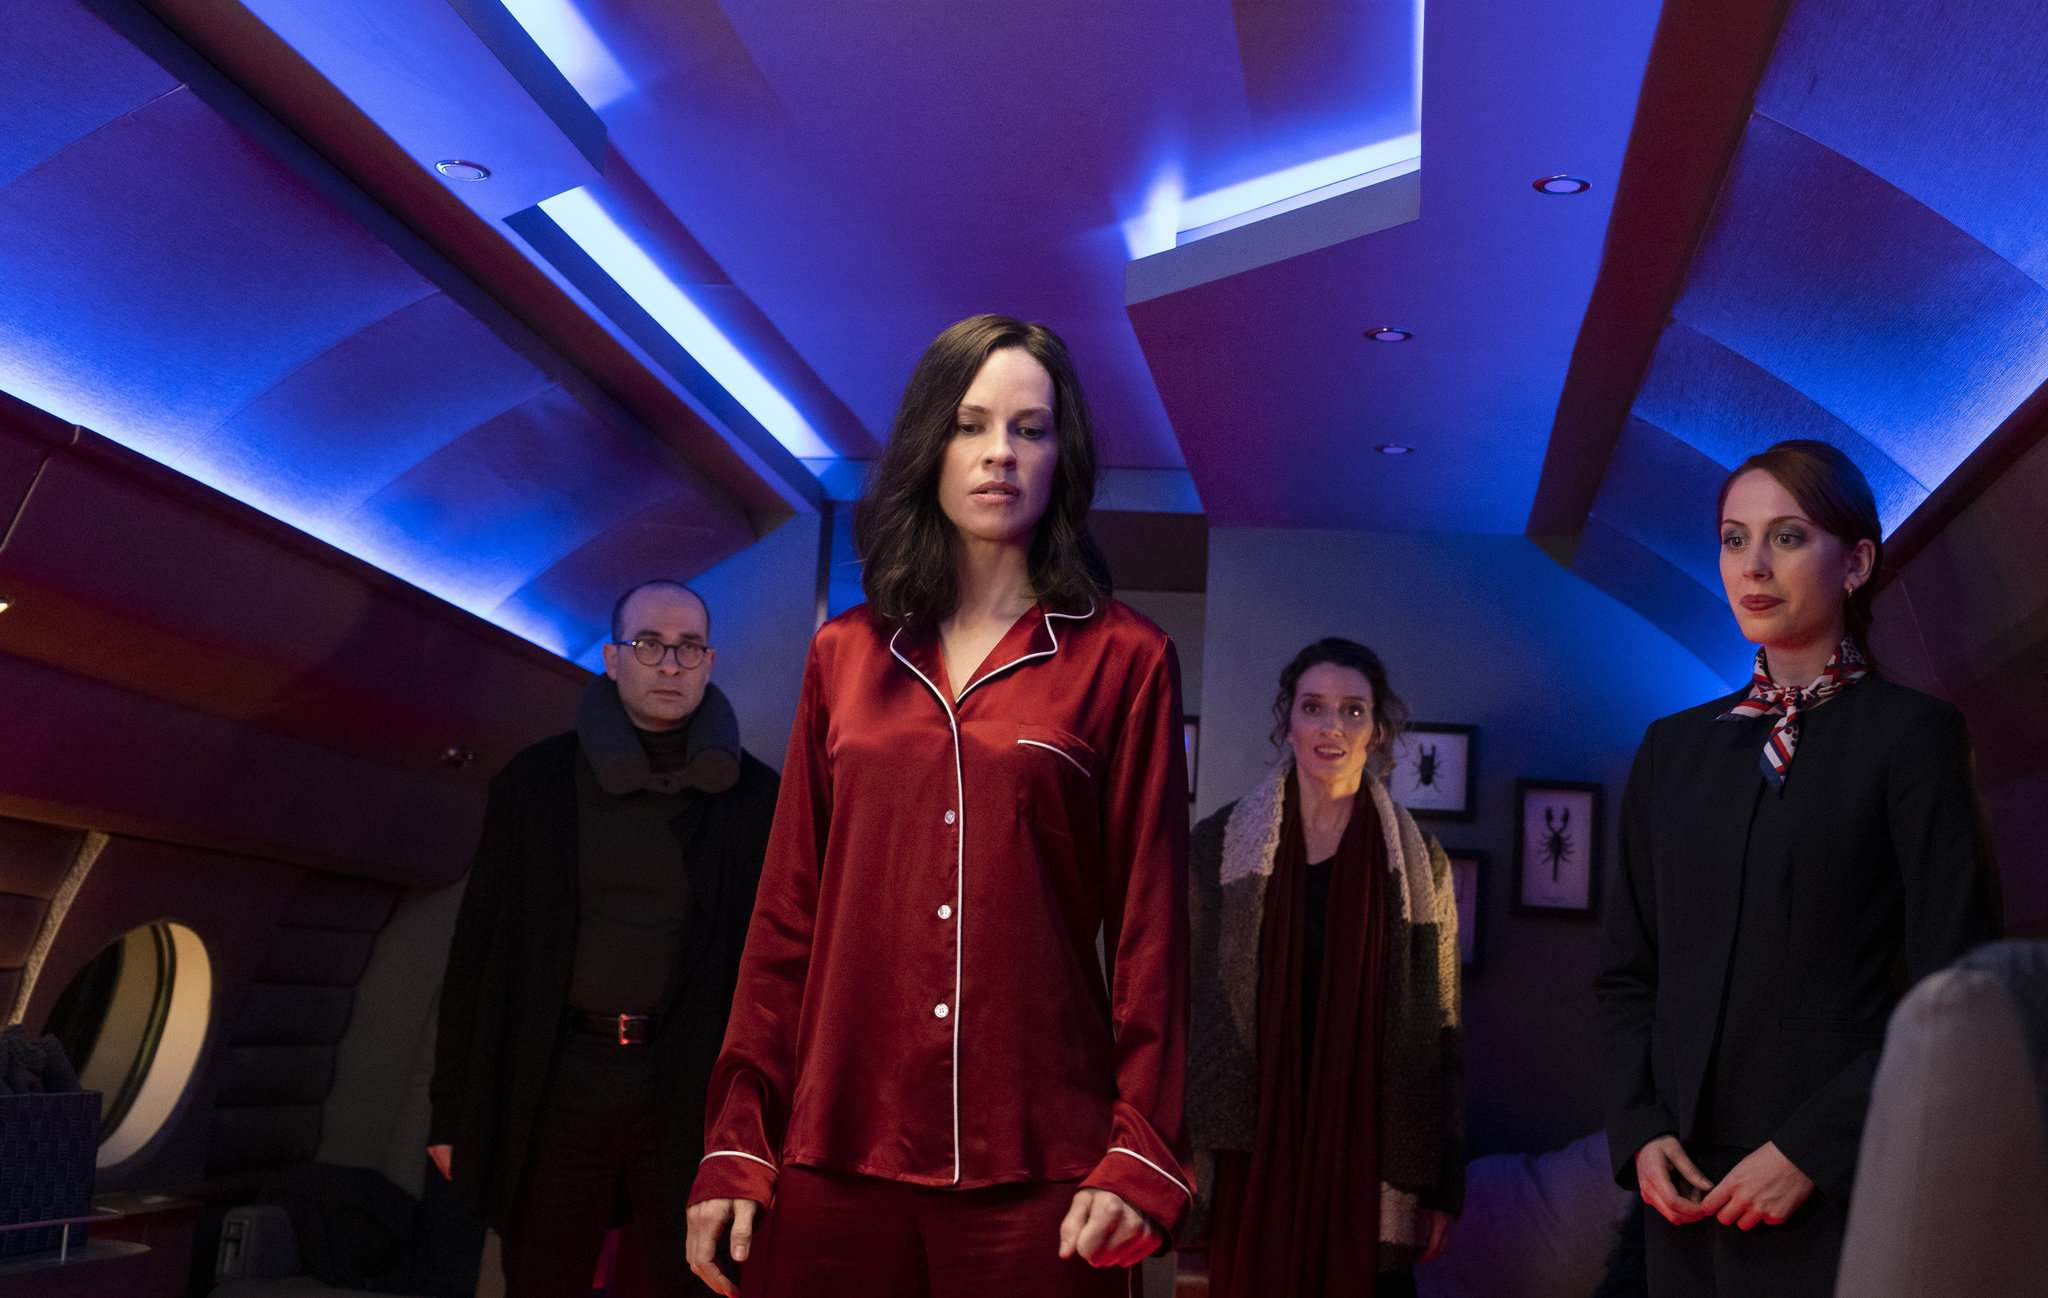 Patti Perret/Universal Pictures</p><p>Hilary Swank as Athena: Red satin pyjamas are the uniform of the liberal elite.</p>